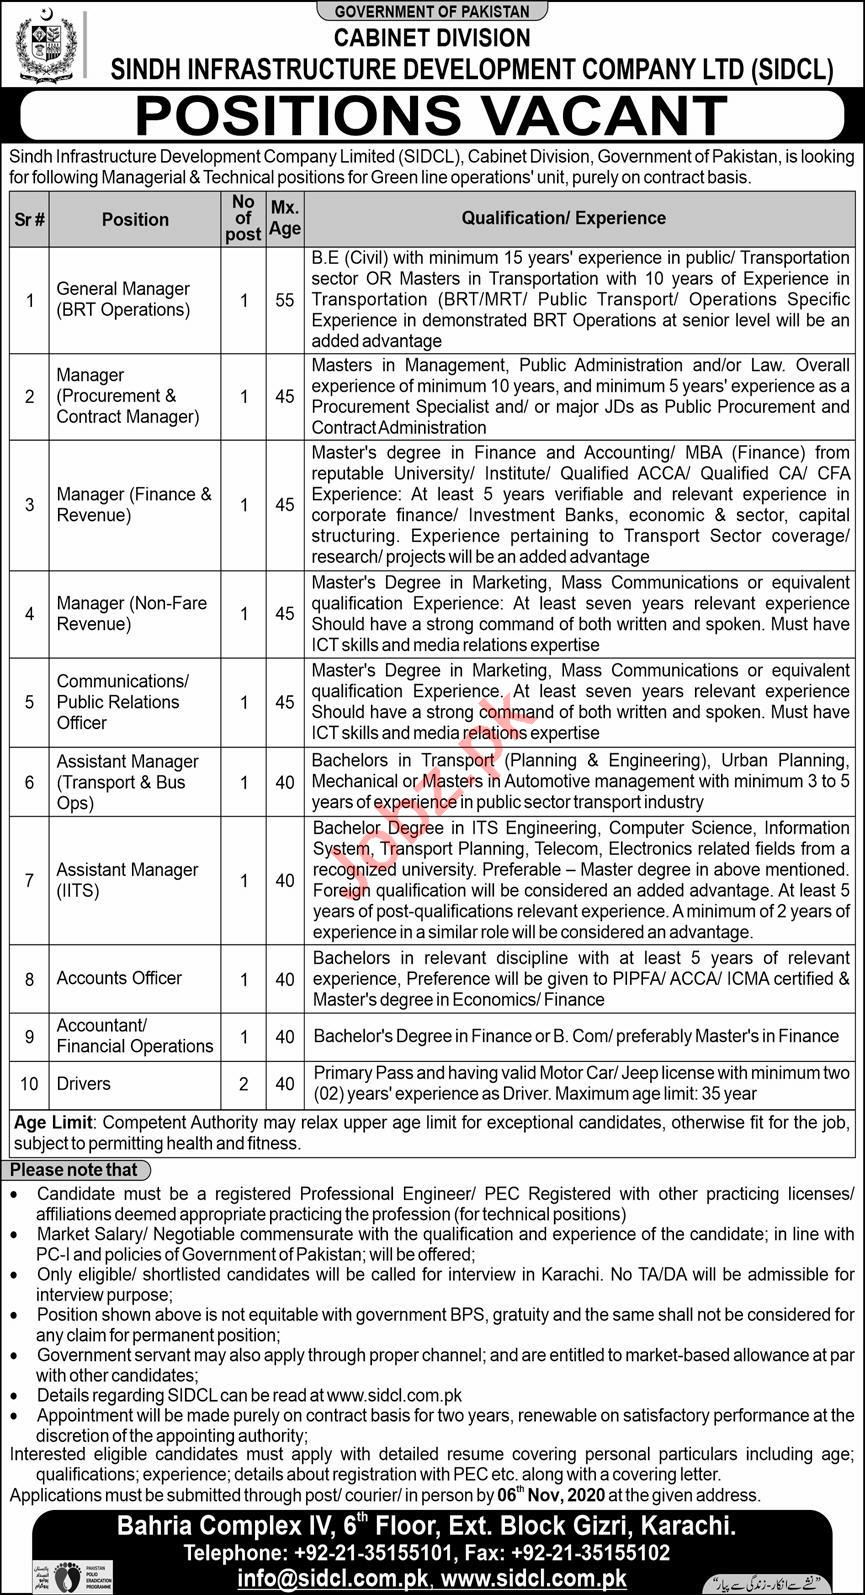 SIDCL Sindh Infrastructure Development Company Jobs 2020